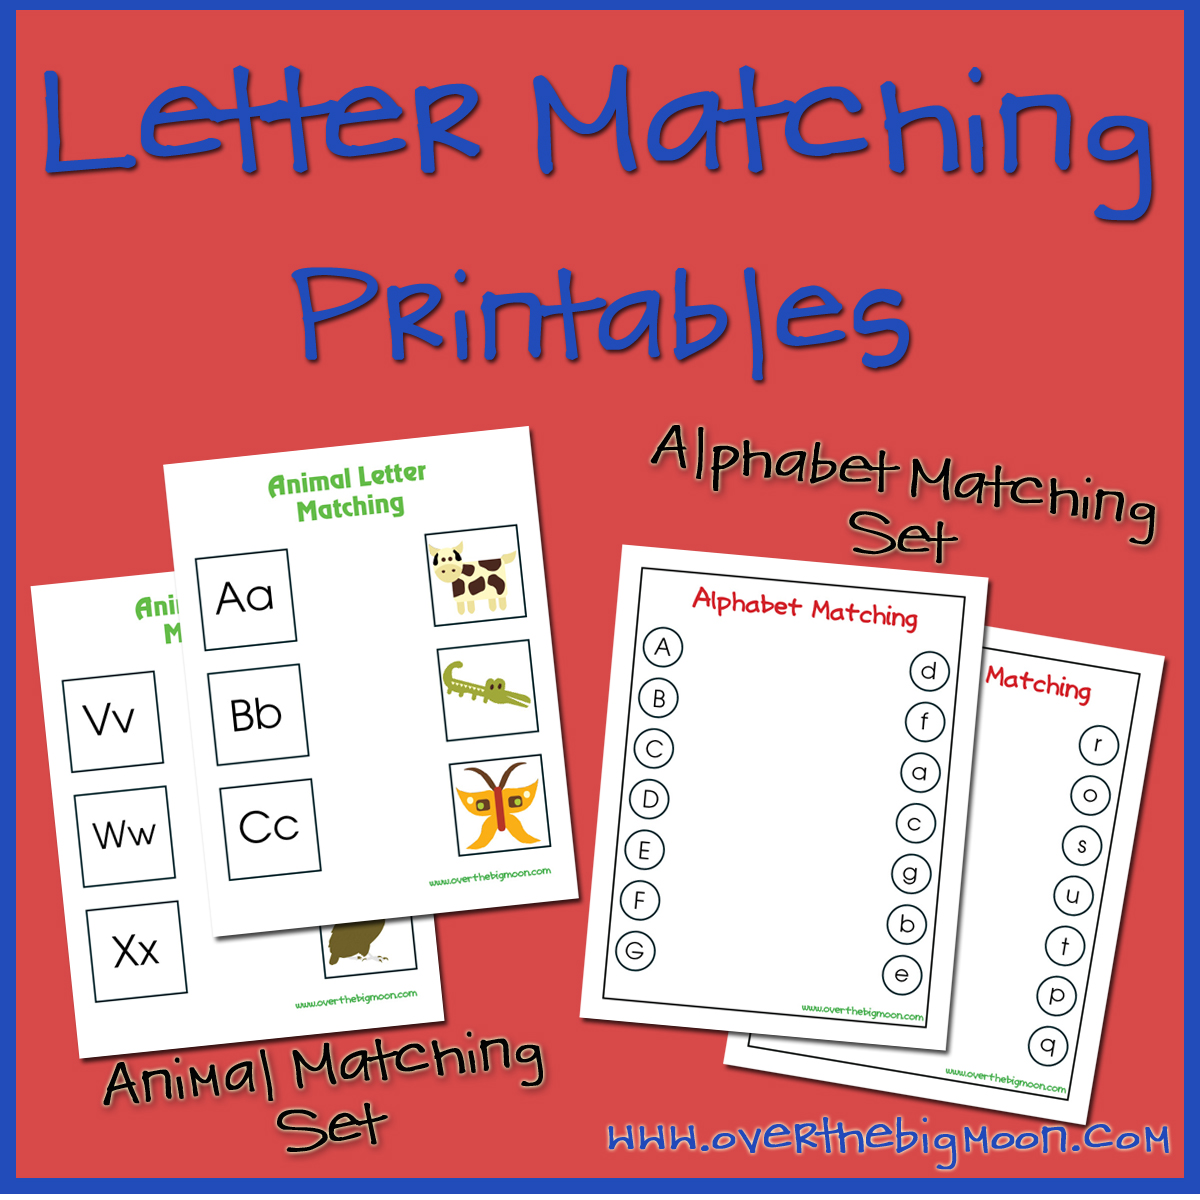 7 Best Images Of Letter Matching Printables